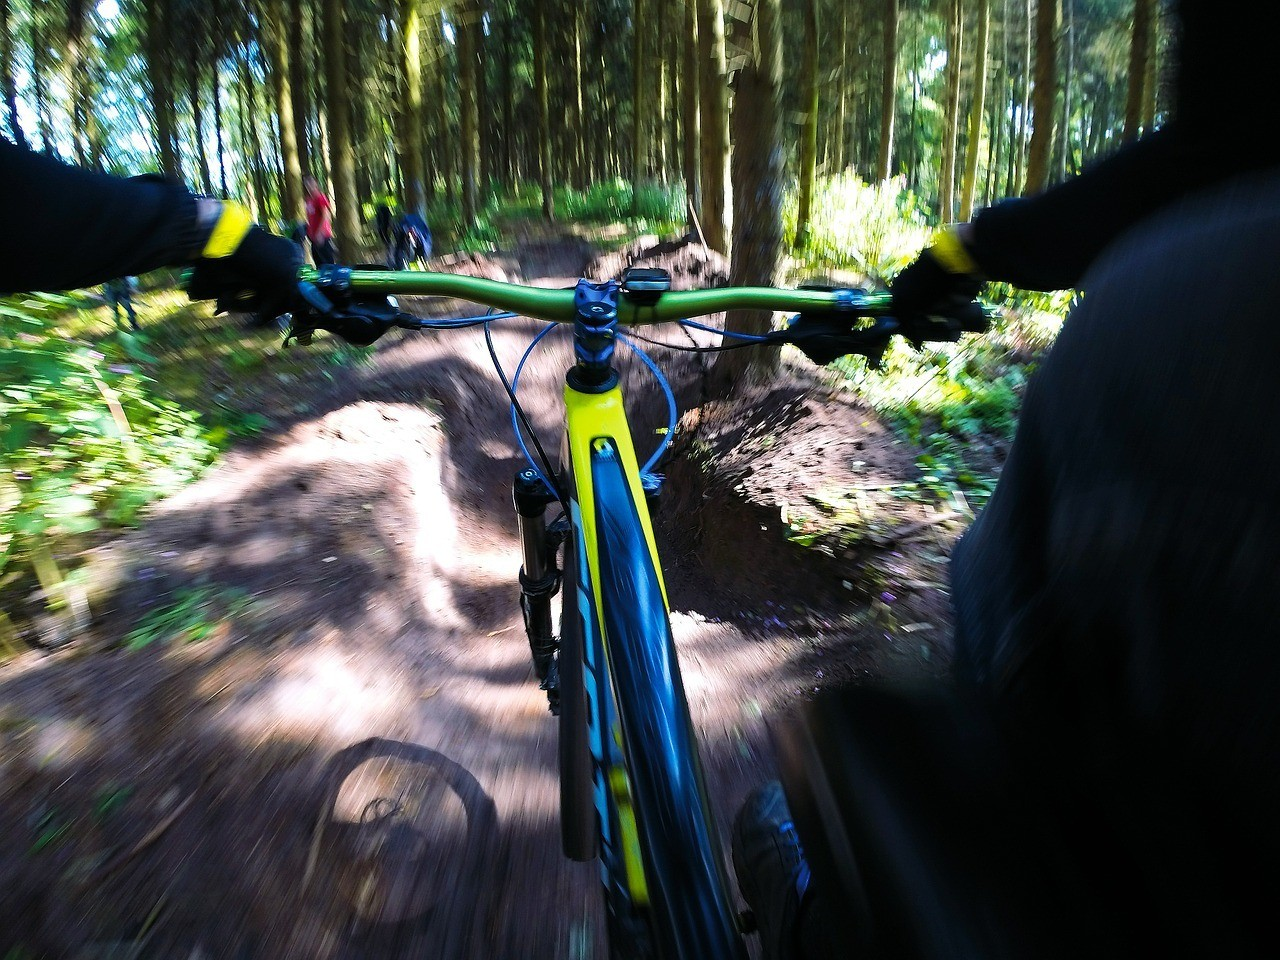 gopro mountain biking footage